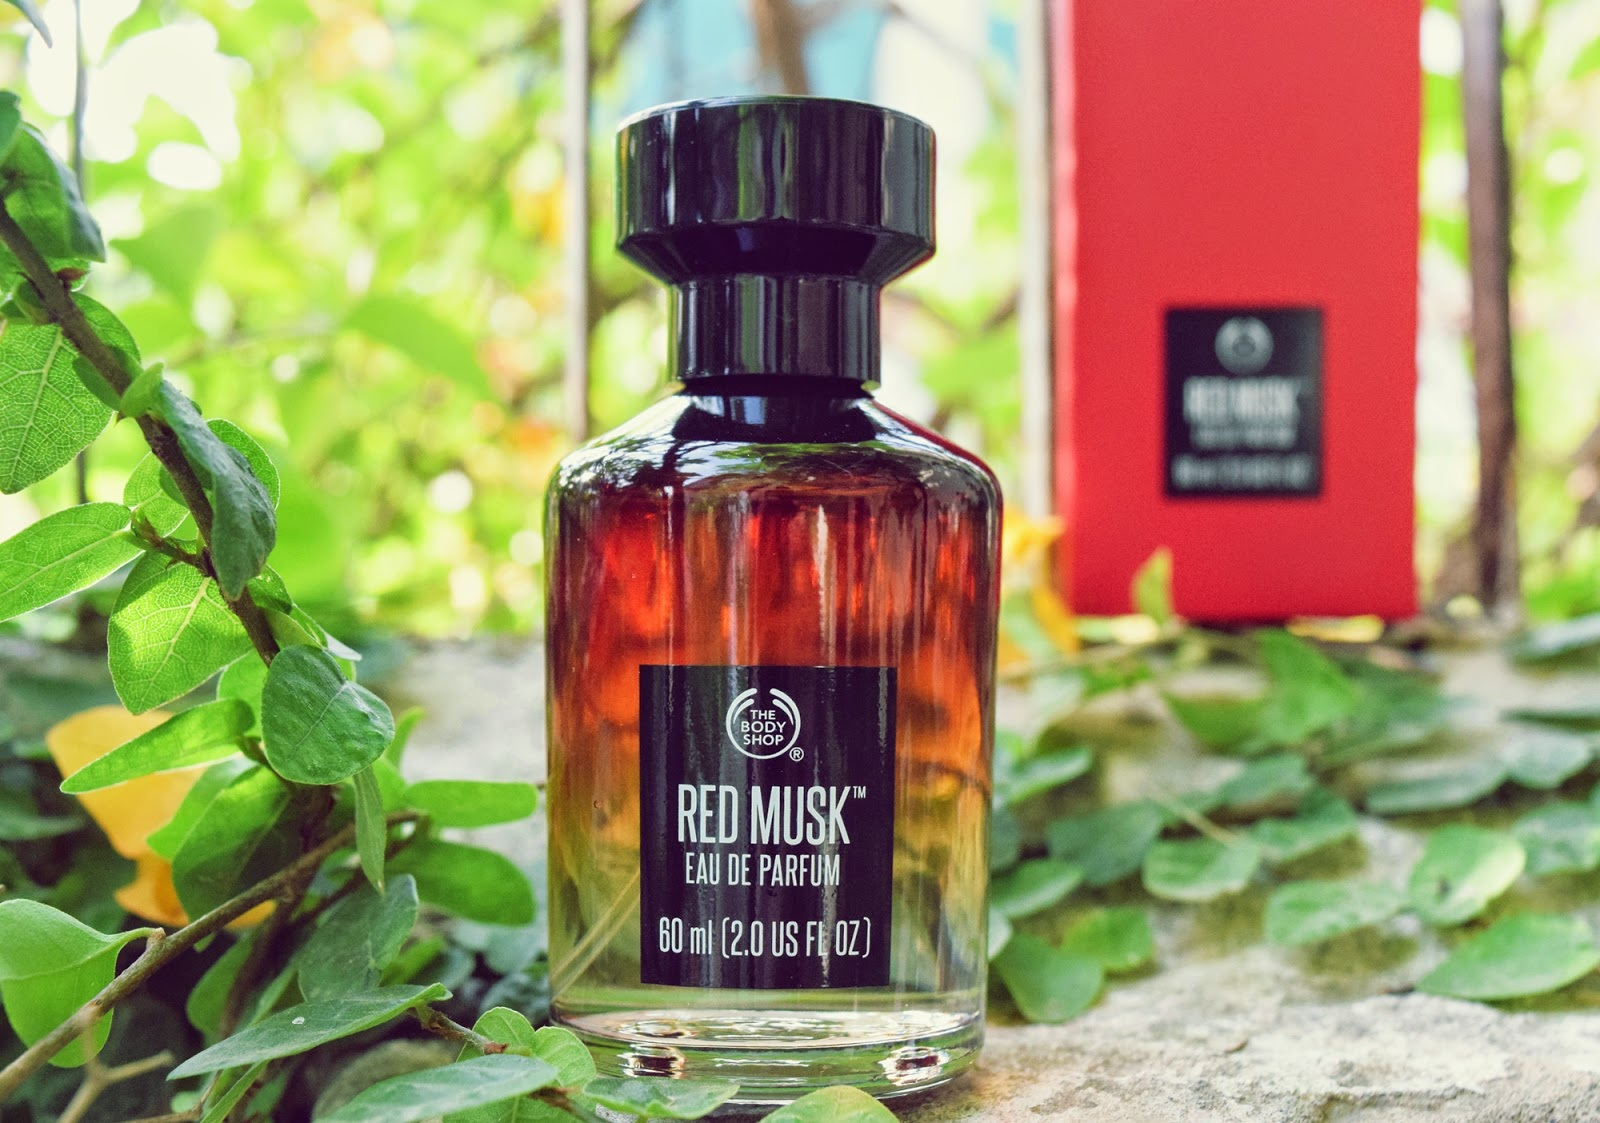 Red Musk Eau de Parfum by The Body Shop